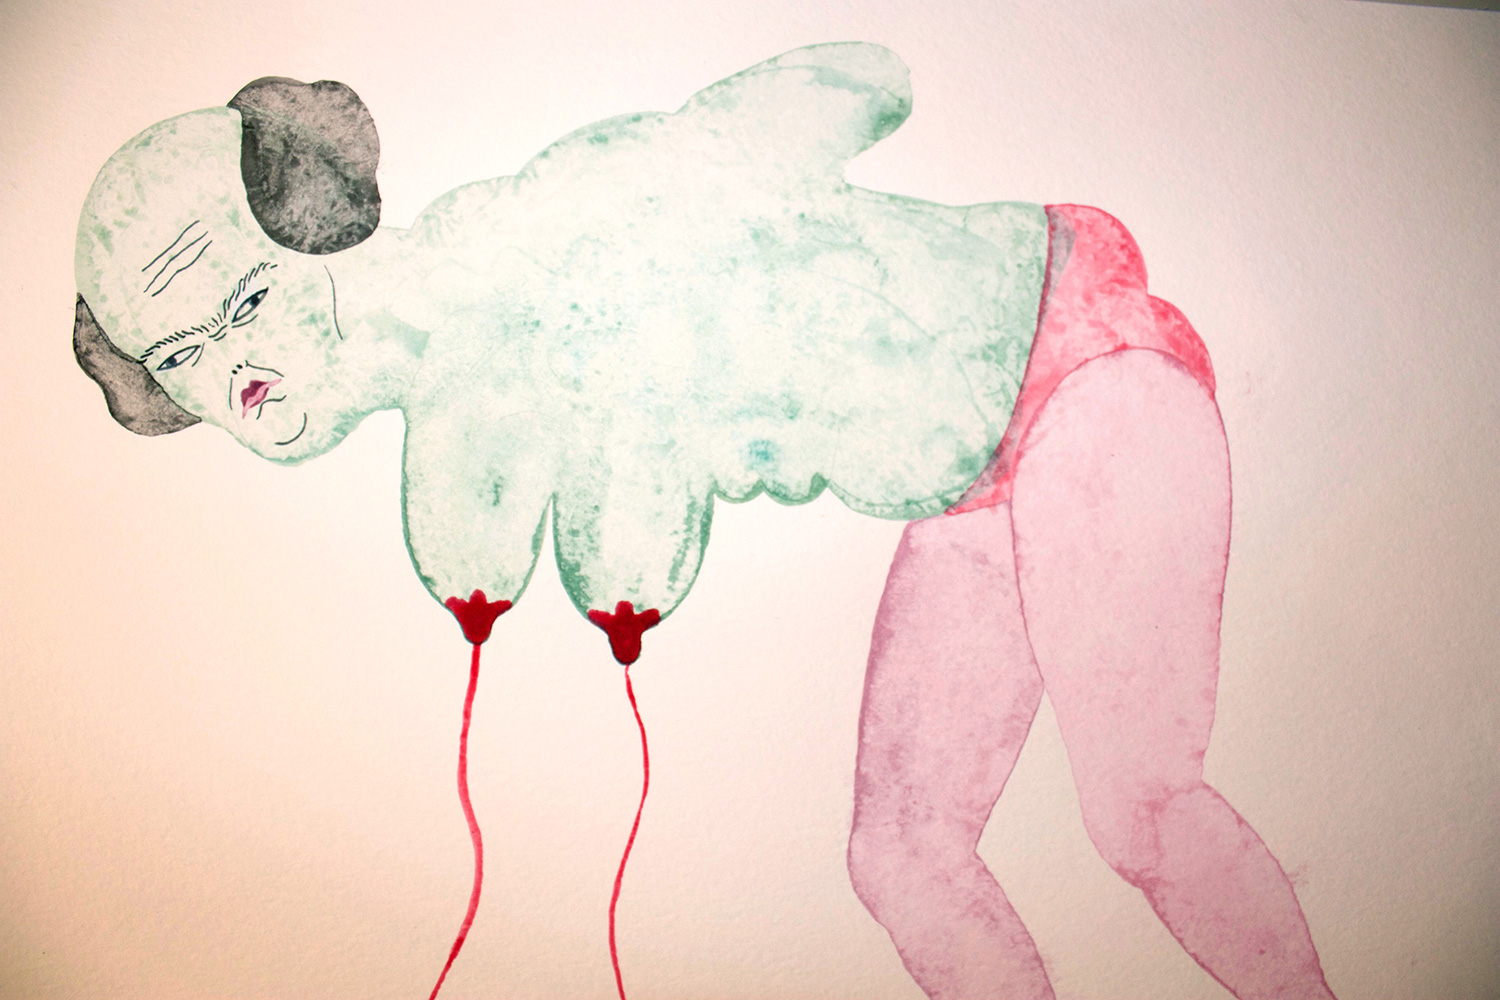 drawings, gouache, watercolors, figurative, portraiture, surrealistic, bodies, moods, sexuality, green, pink, gouache, paper, contemporary-art, decorative, erotic, expressionism, interior, interior-design, modern, modern-art, nude, sexual, Buy original high quality art. Paintings, drawings, limited edition prints & posters by talented artists.